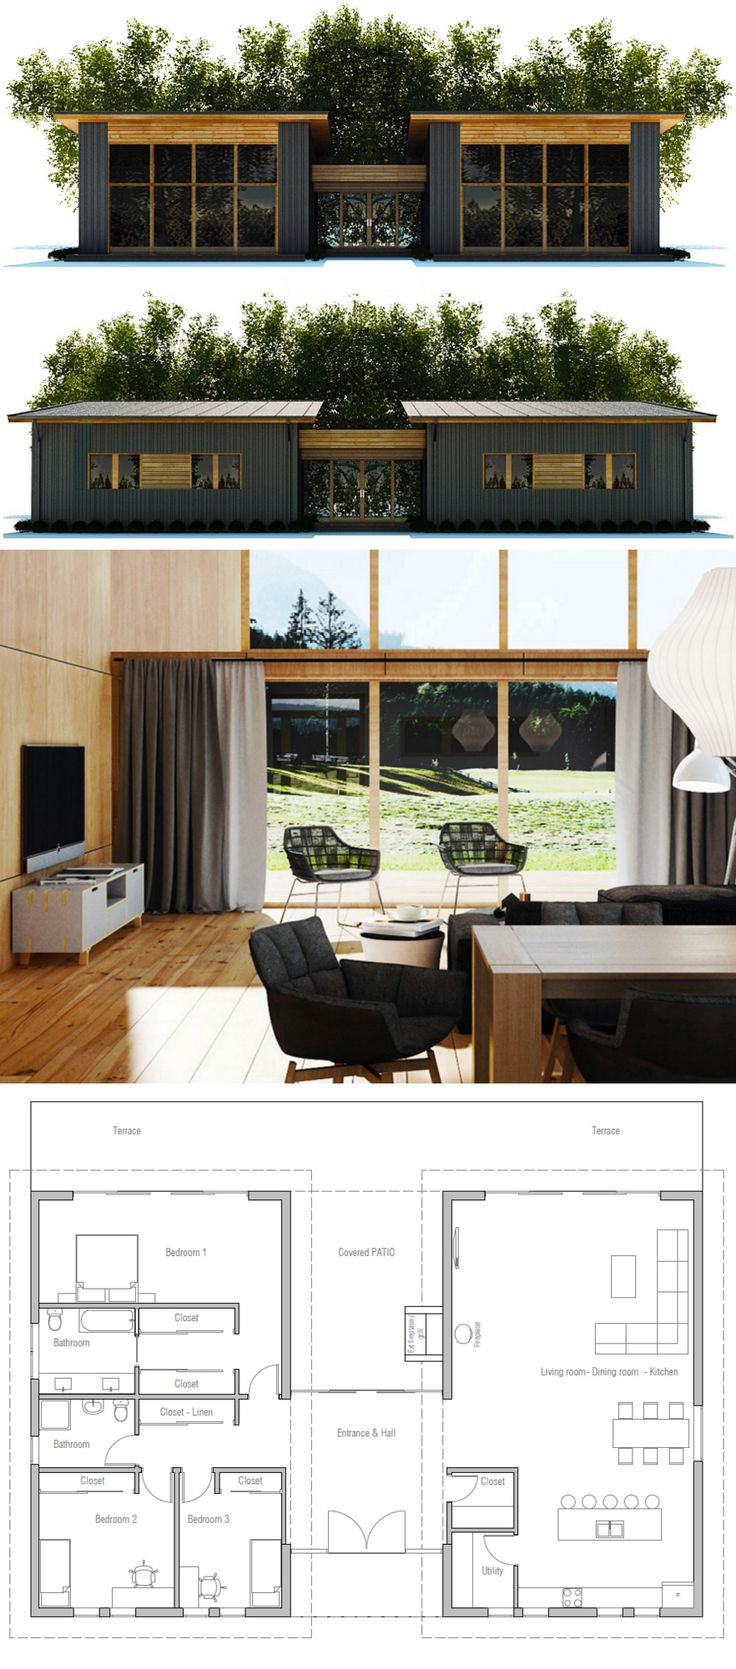 Prime 17 Best Ideas About Small Houses On Pinterest Small Homes Tiny Largest Home Design Picture Inspirations Pitcheantrous